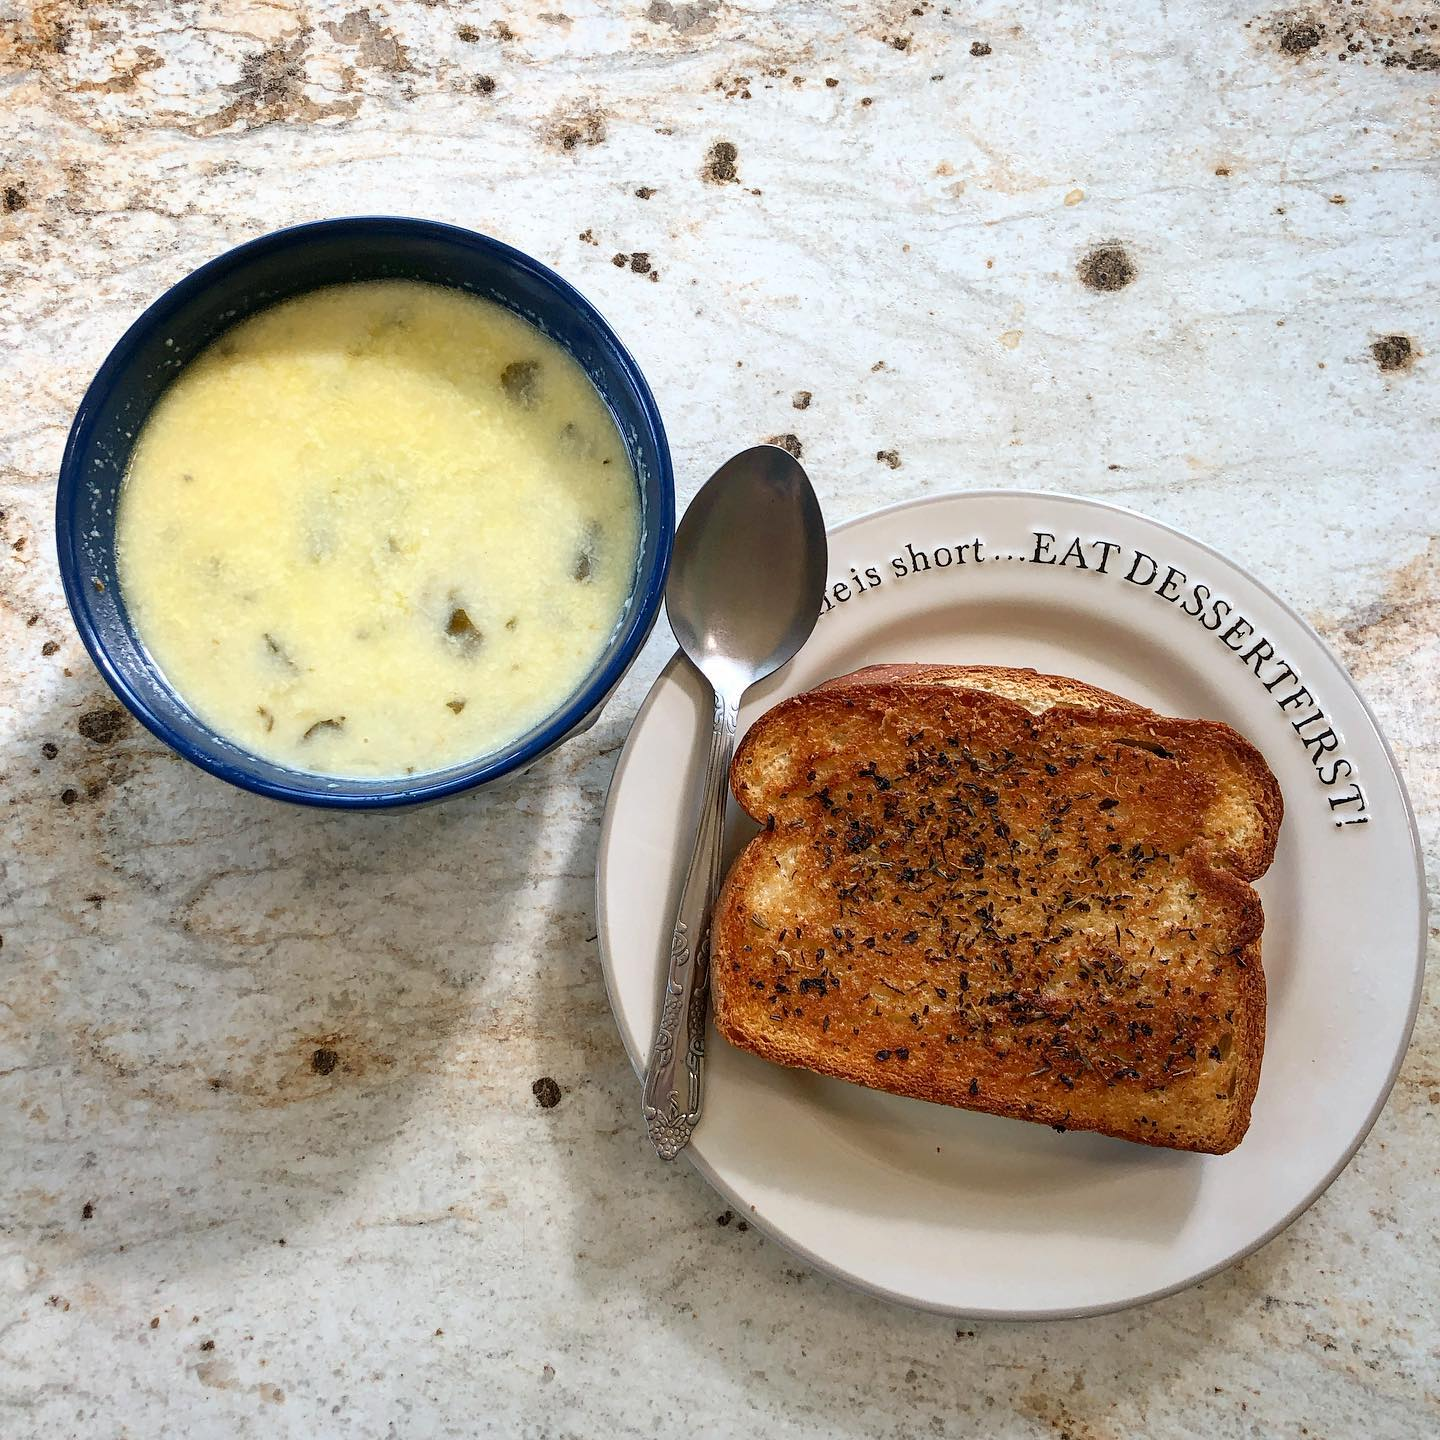 kickin' pepper-jack and broccoli soup with grilled cheese